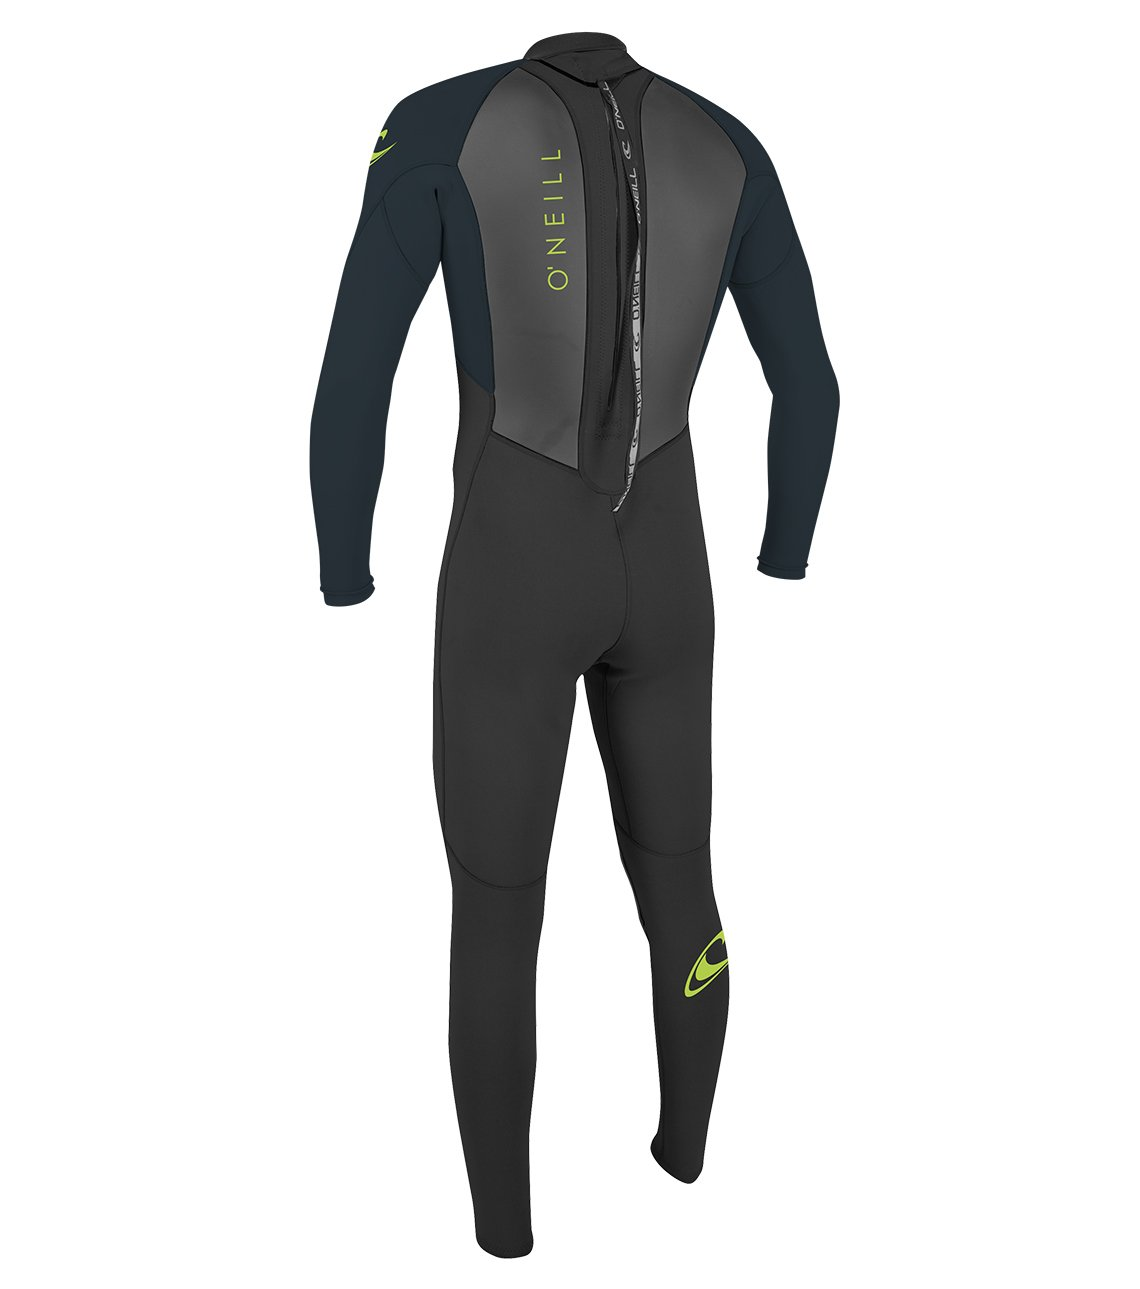 O'Neill Youth Reactor-2 3/2mm Back Zip Full Wetsuit, Black/Slate, 4 by O'Neill Wetsuits (Image #3)